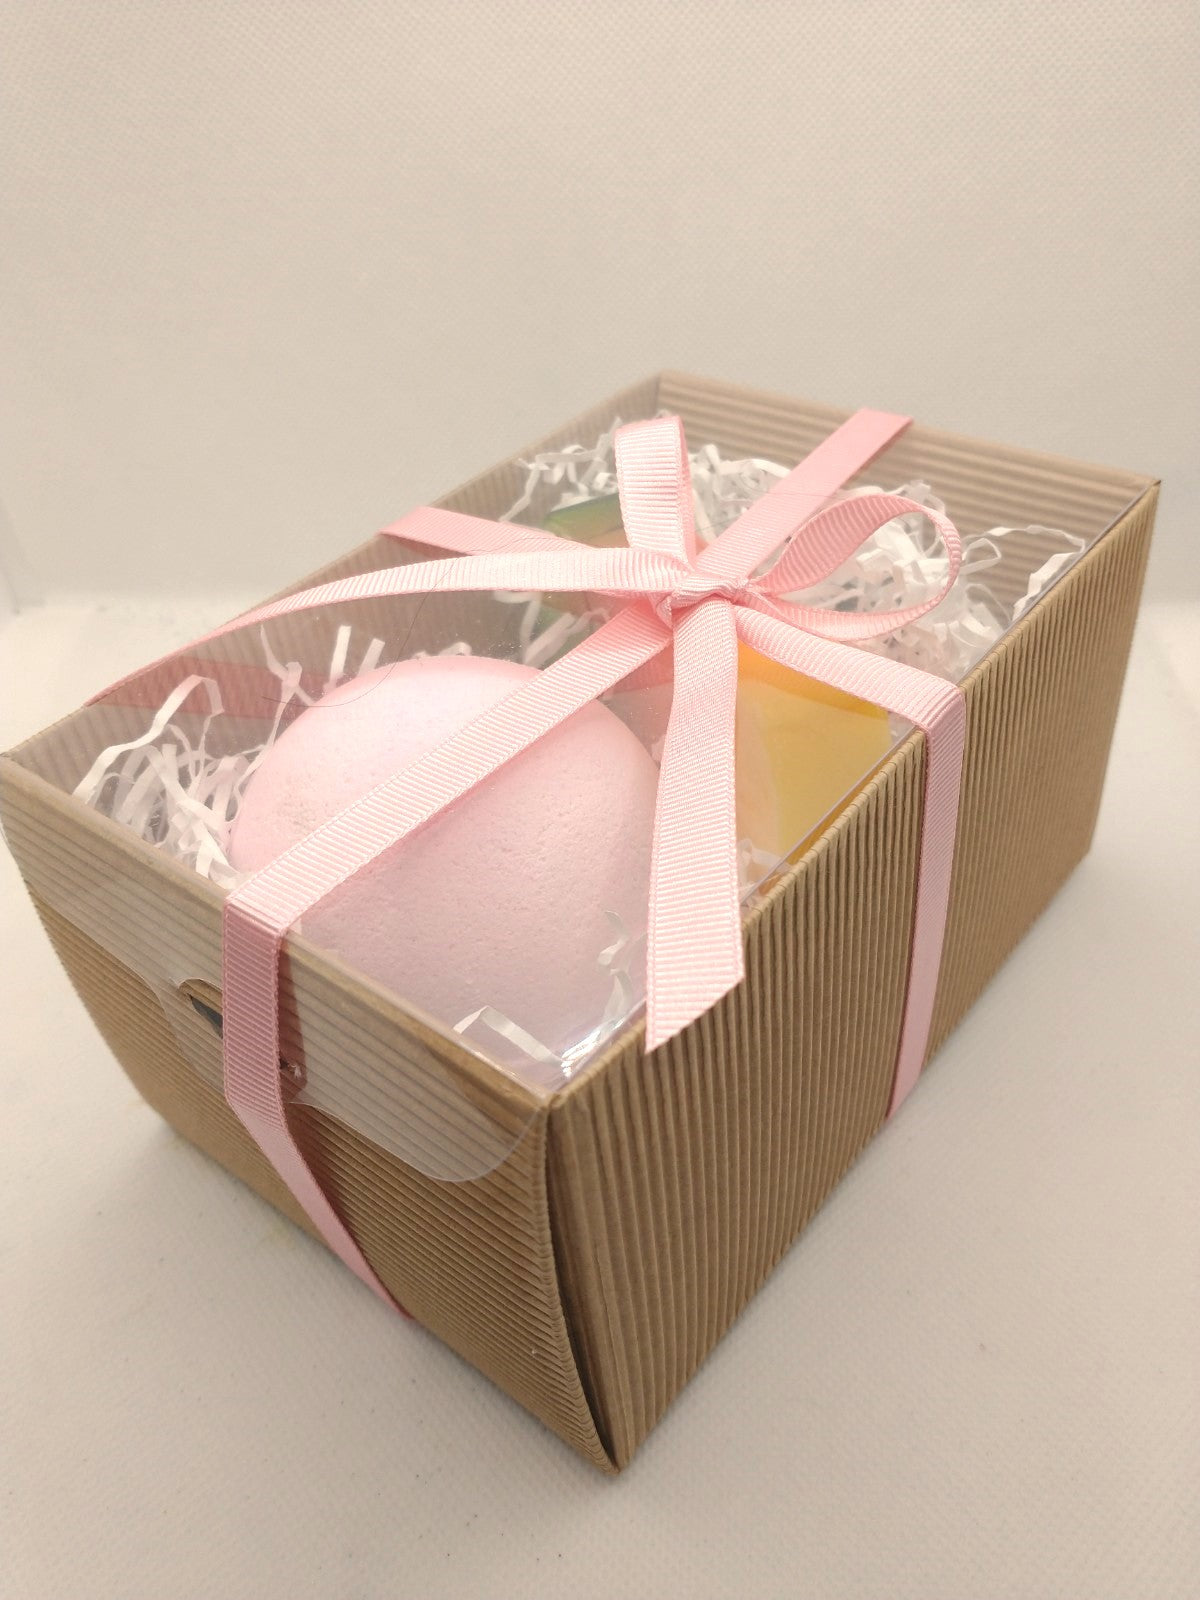 Displaying packaged bath bomb and handmade soap gift set in a brown corrugated kraft gift box with a a clear lid and a hand tied pink ribbon